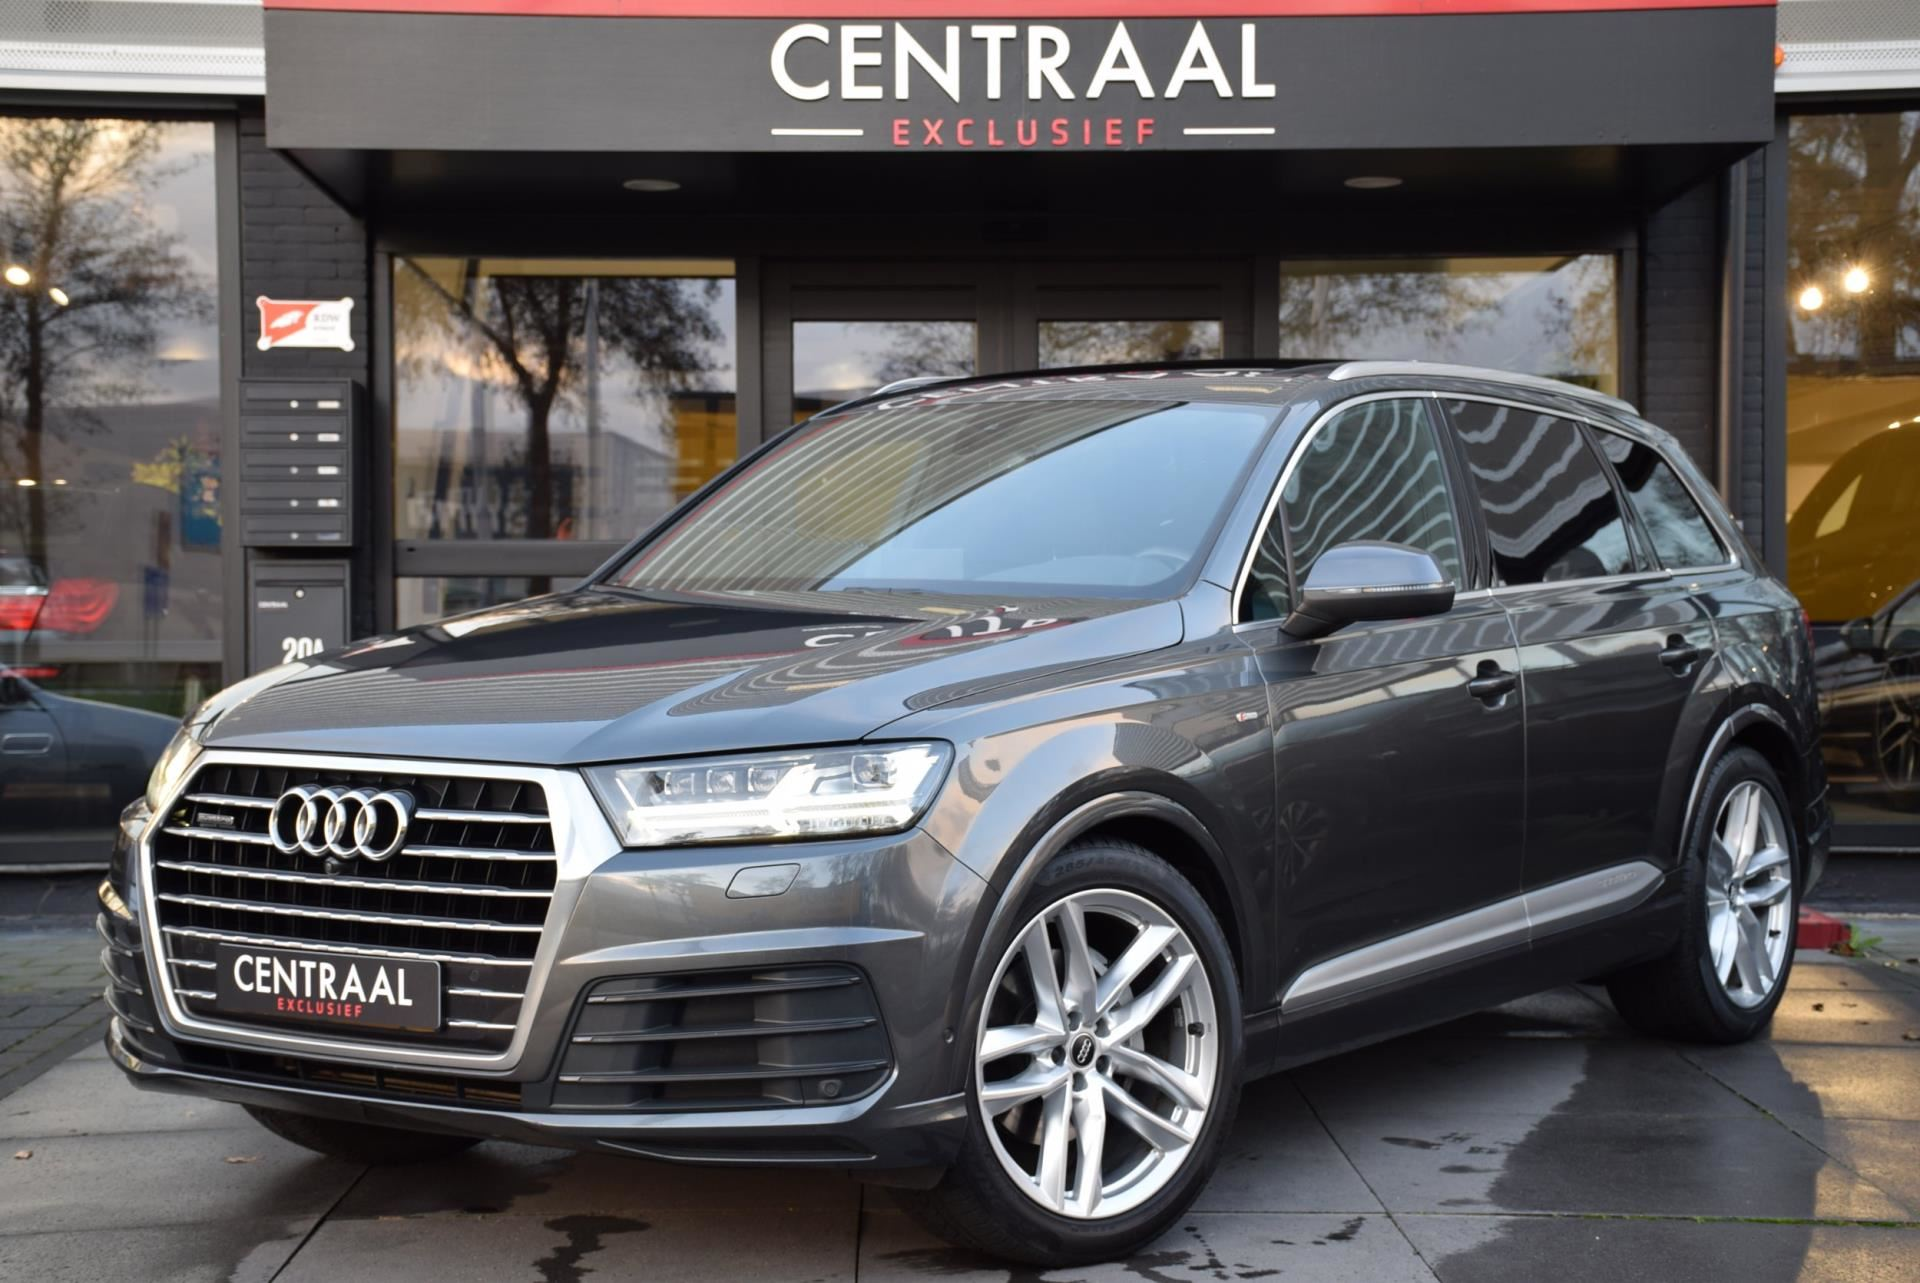 Audi Q7 occasion - Centraal Exclusief B.V.